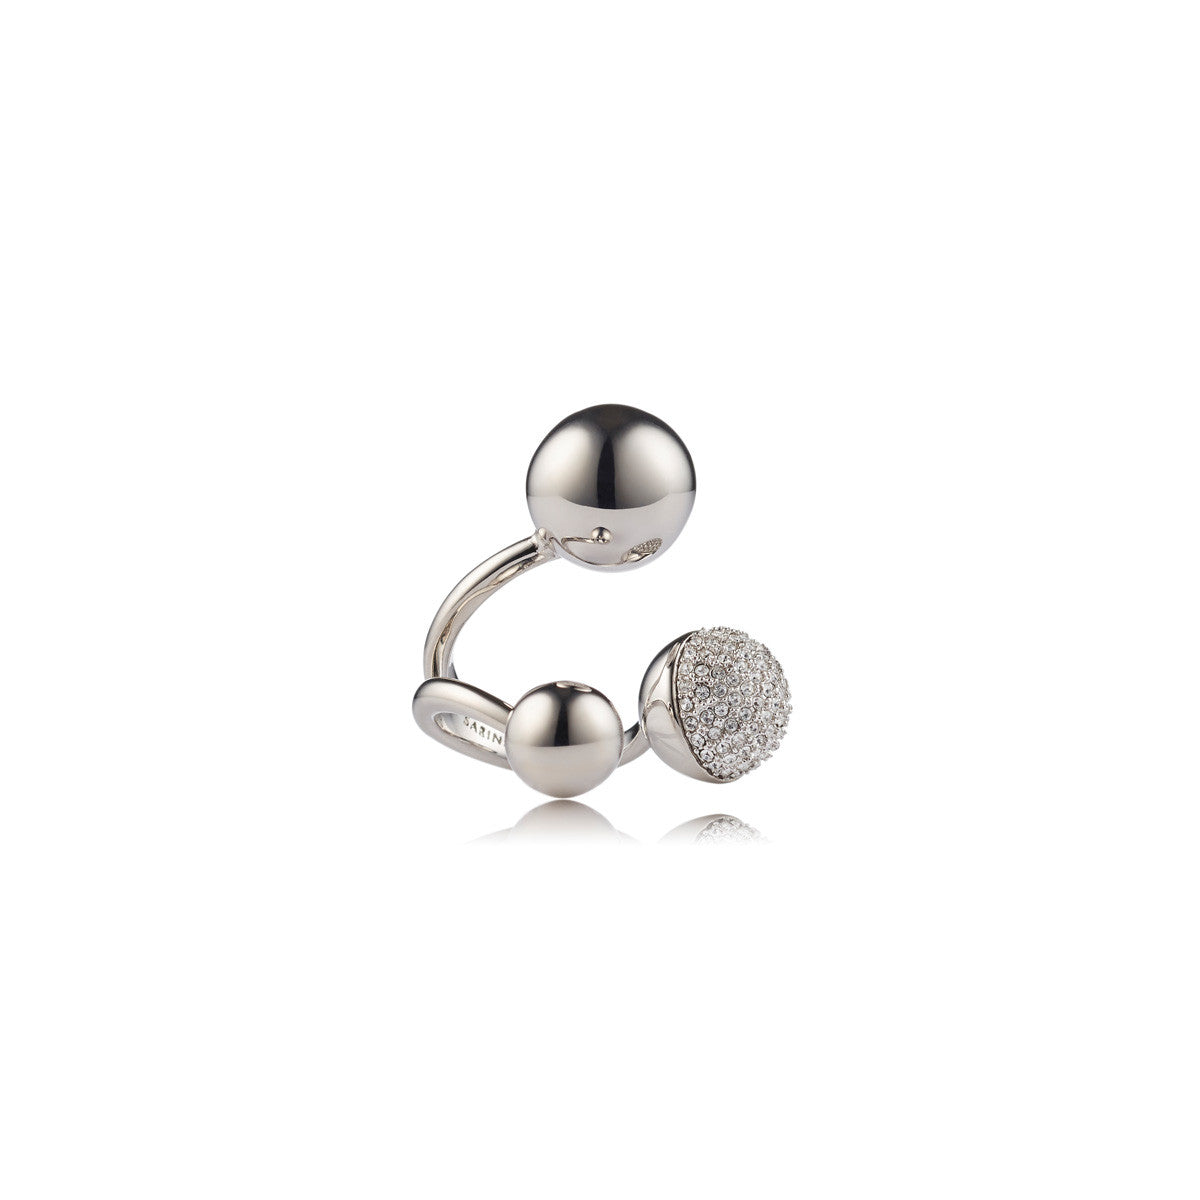 Solid brass, rhodium plated Celestine ring with Swarovski® crystal pavè detailing - front